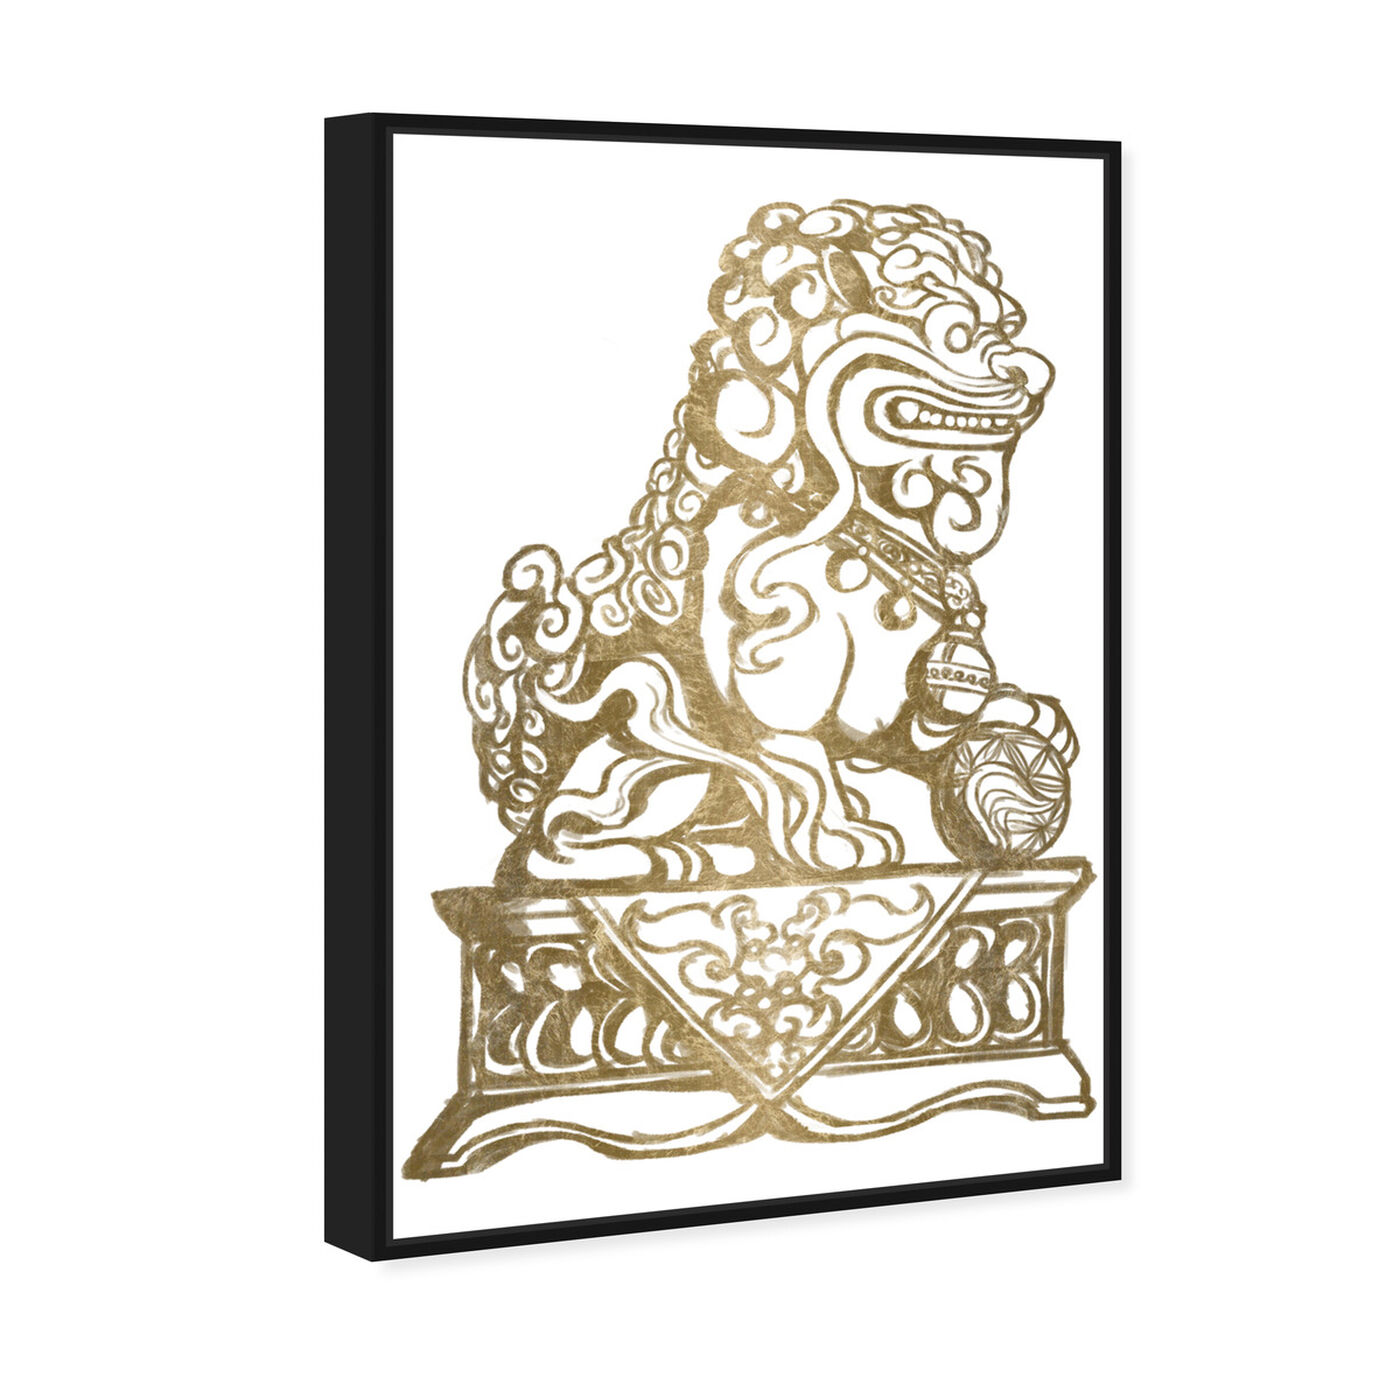 Angled view of Foo Dog Gold II featuring symbols and objects and symbols art.